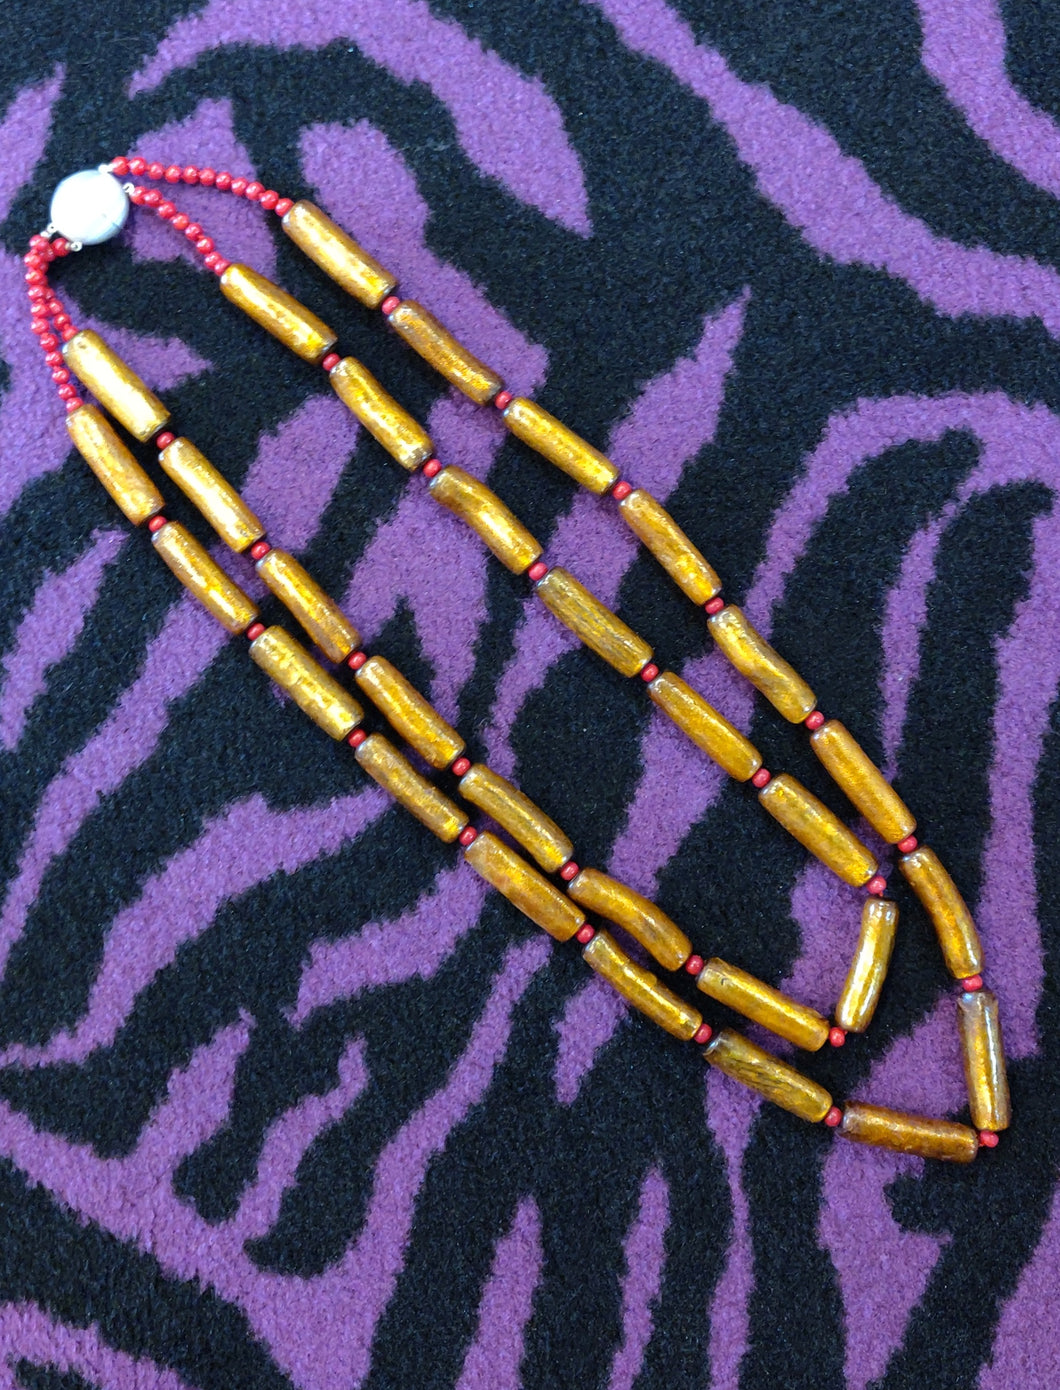 Golden Bamboo and Stem Coral Beads